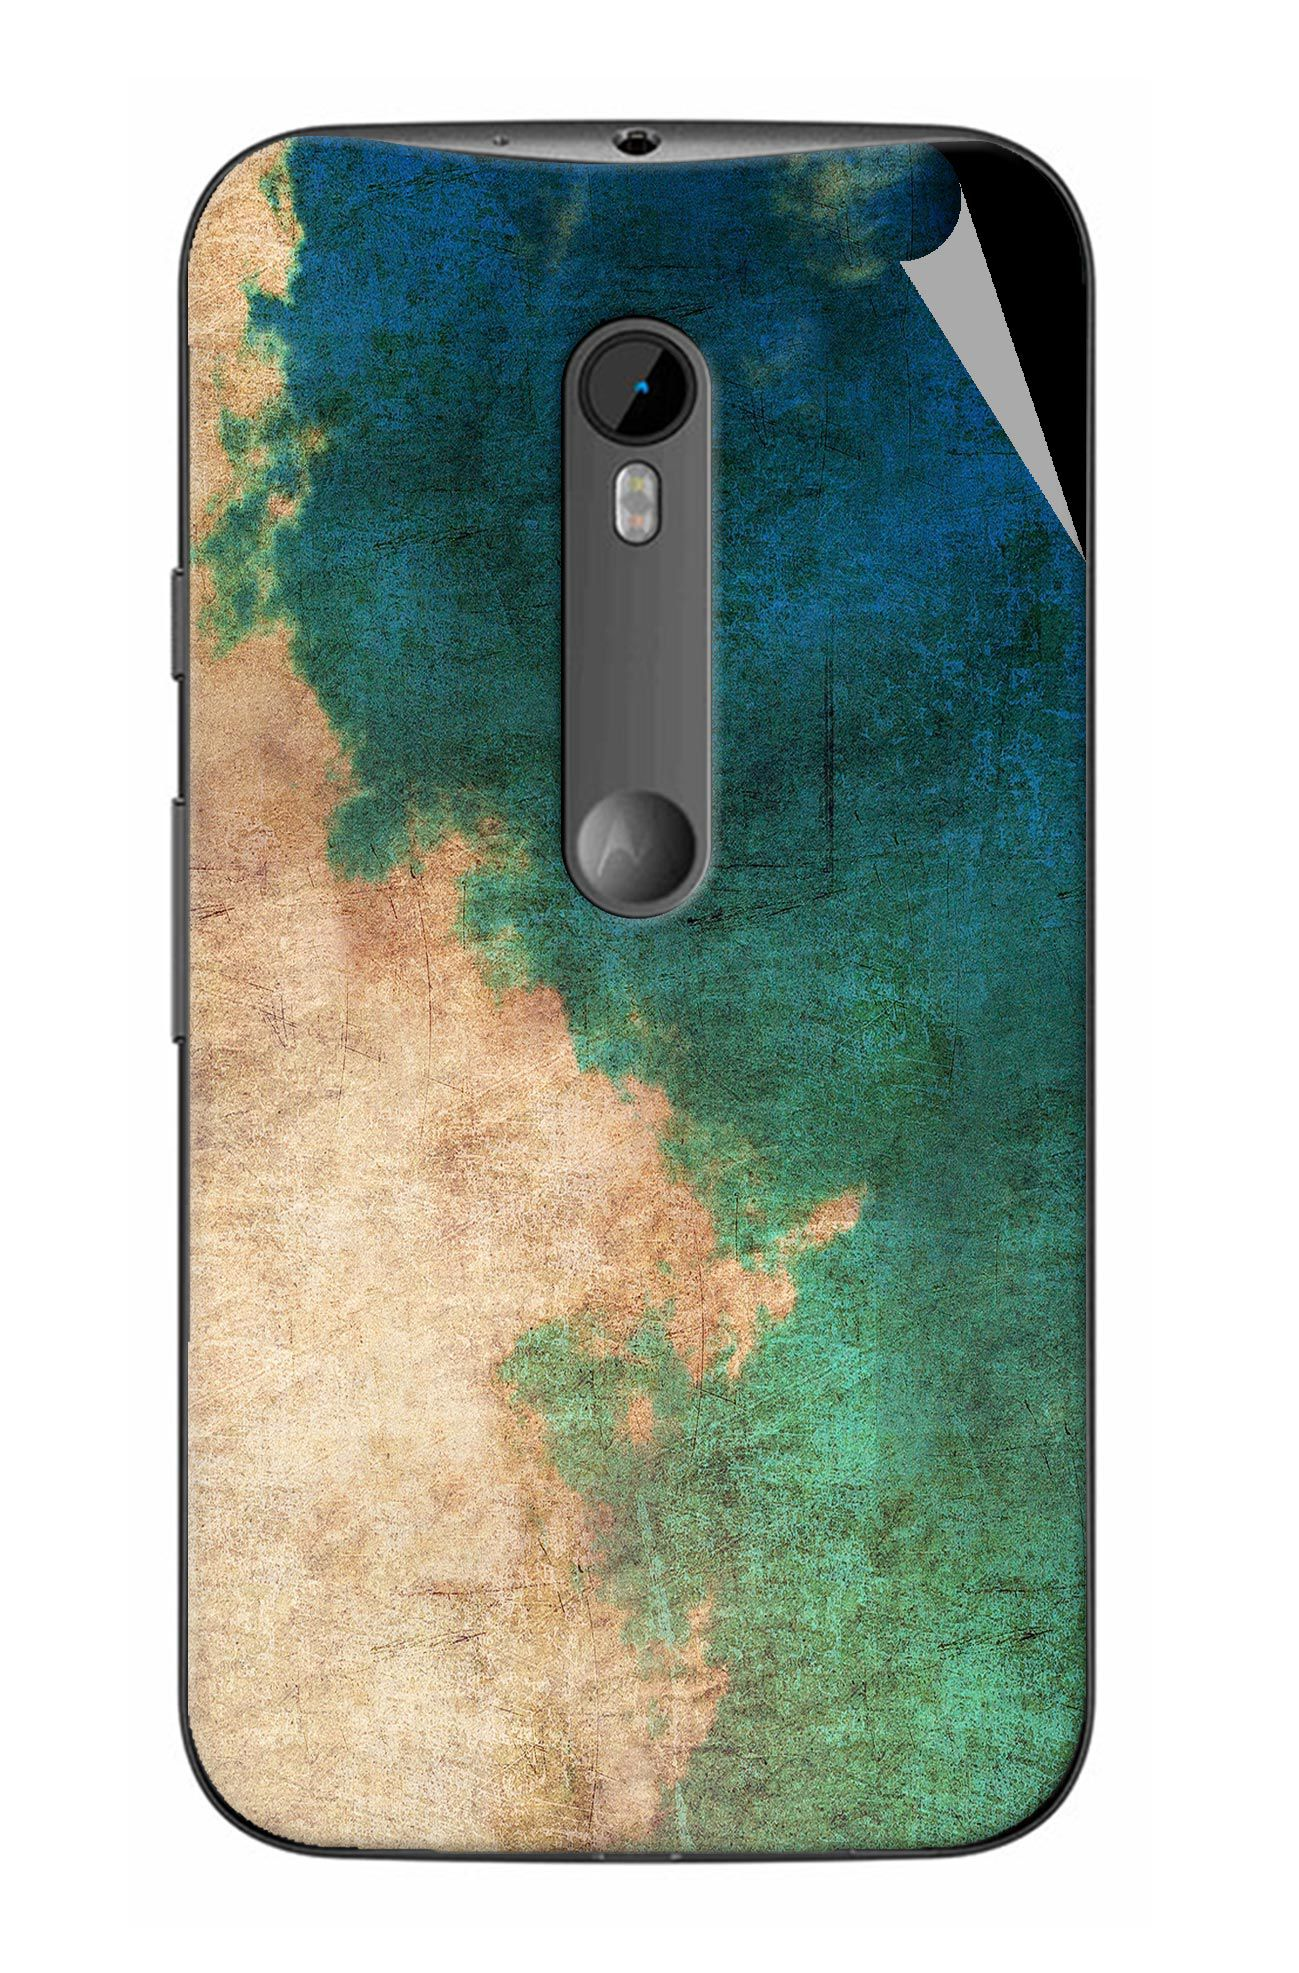 G.store Designer Skin Sticker For Moto G3 Turbo Edition